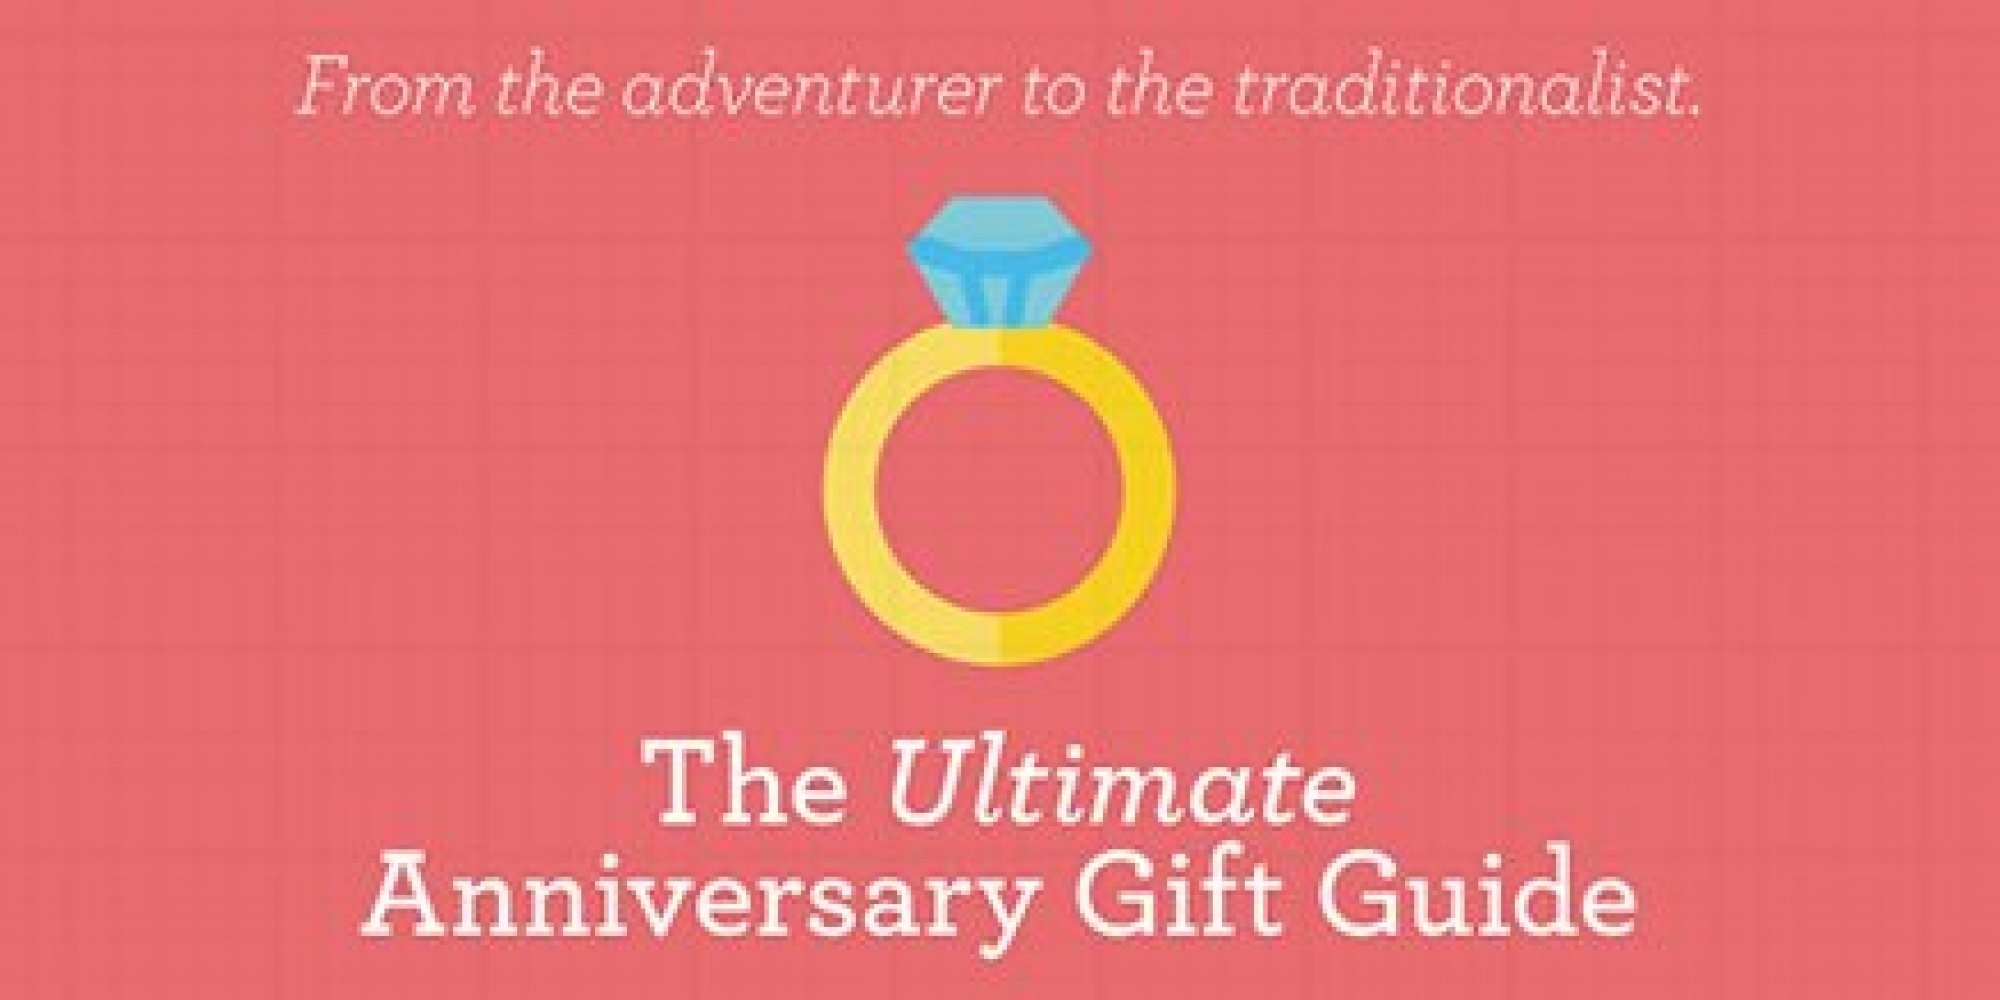 10 Amazing 15 Year Wedding Anniversary Gift Ideas the ultimate anniversary gift guide for every kind of spouse huffpost 1 2021